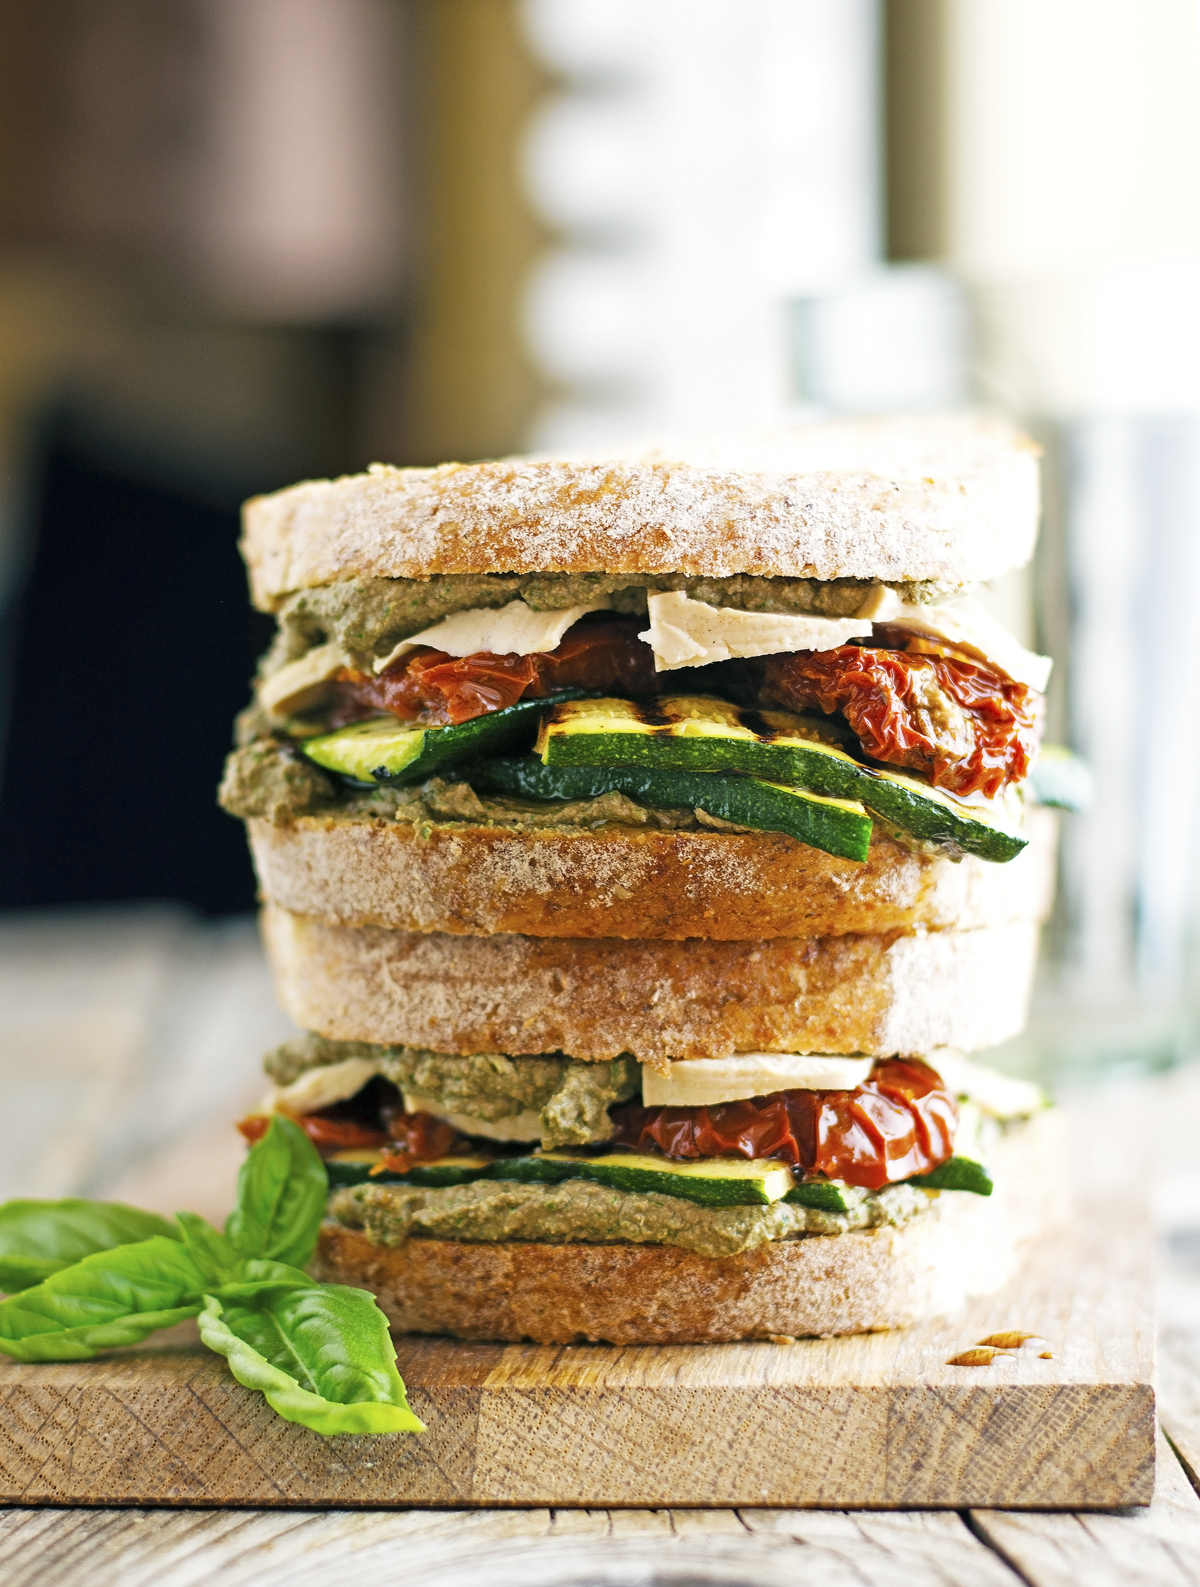 (Vegan) Tofu, Zucchini, Sun-Dried Tomato and Cream of Basil Sandwich